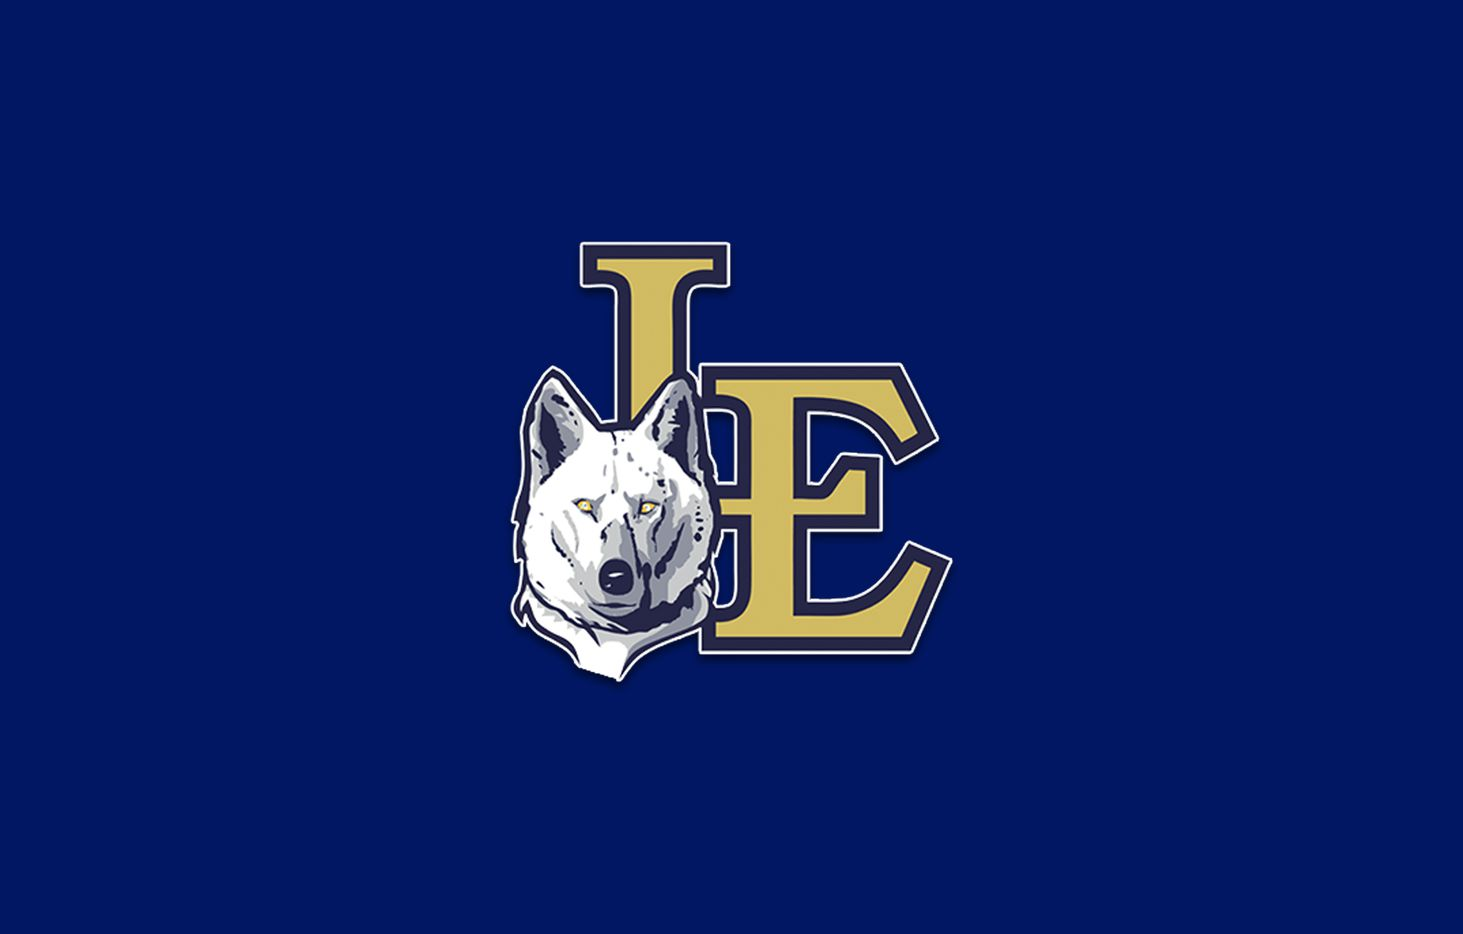 Little Elm logo.